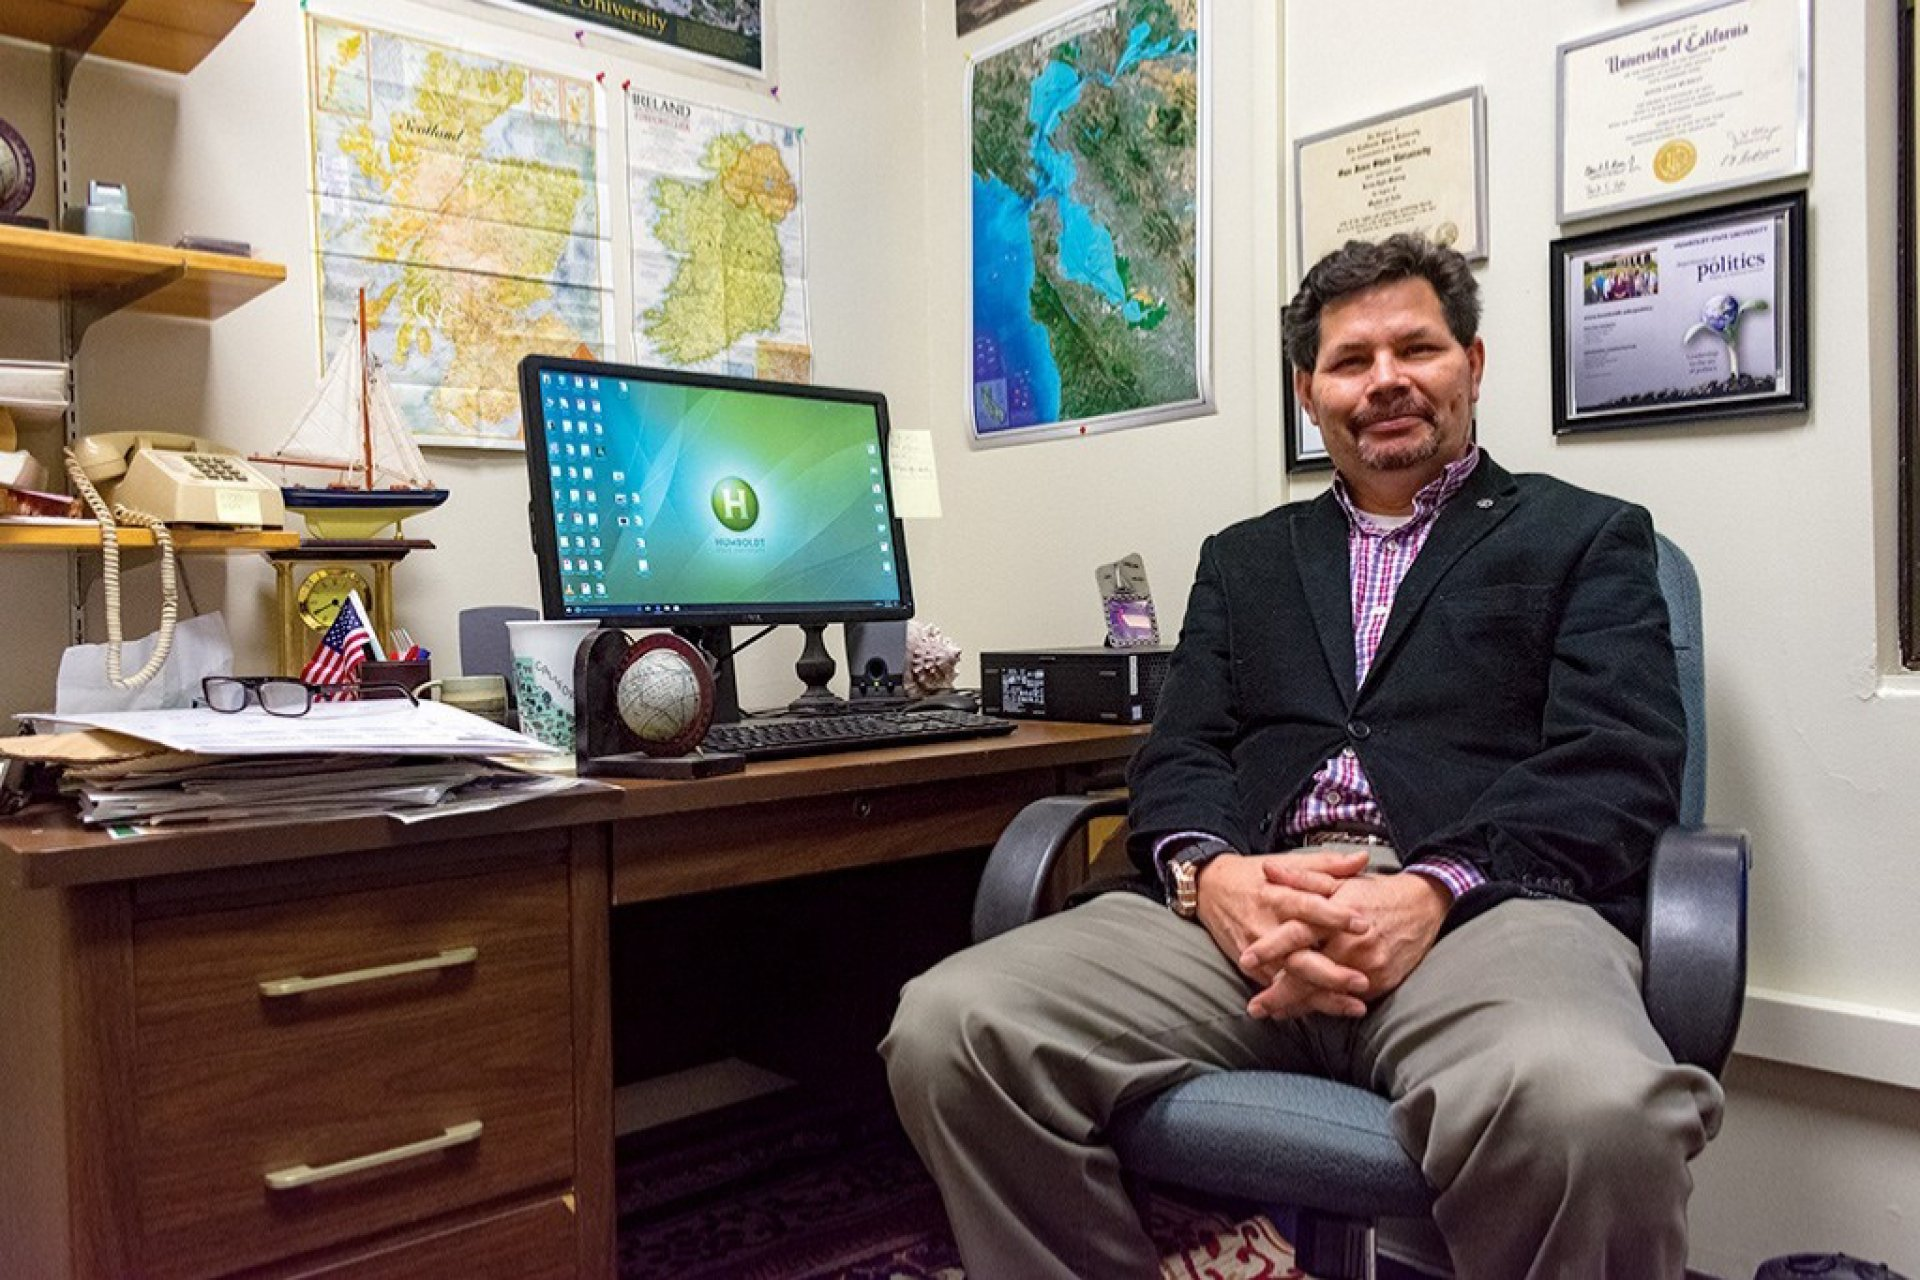 Political science professor Kevin Murray poses in his office on Jan. 22 in Founder's Hall 124 at Humboldt State University. Murray is running as a candidate to represent California's 2nd State Assembly. He's taught political science since 1989. Photo by Megan Bender.